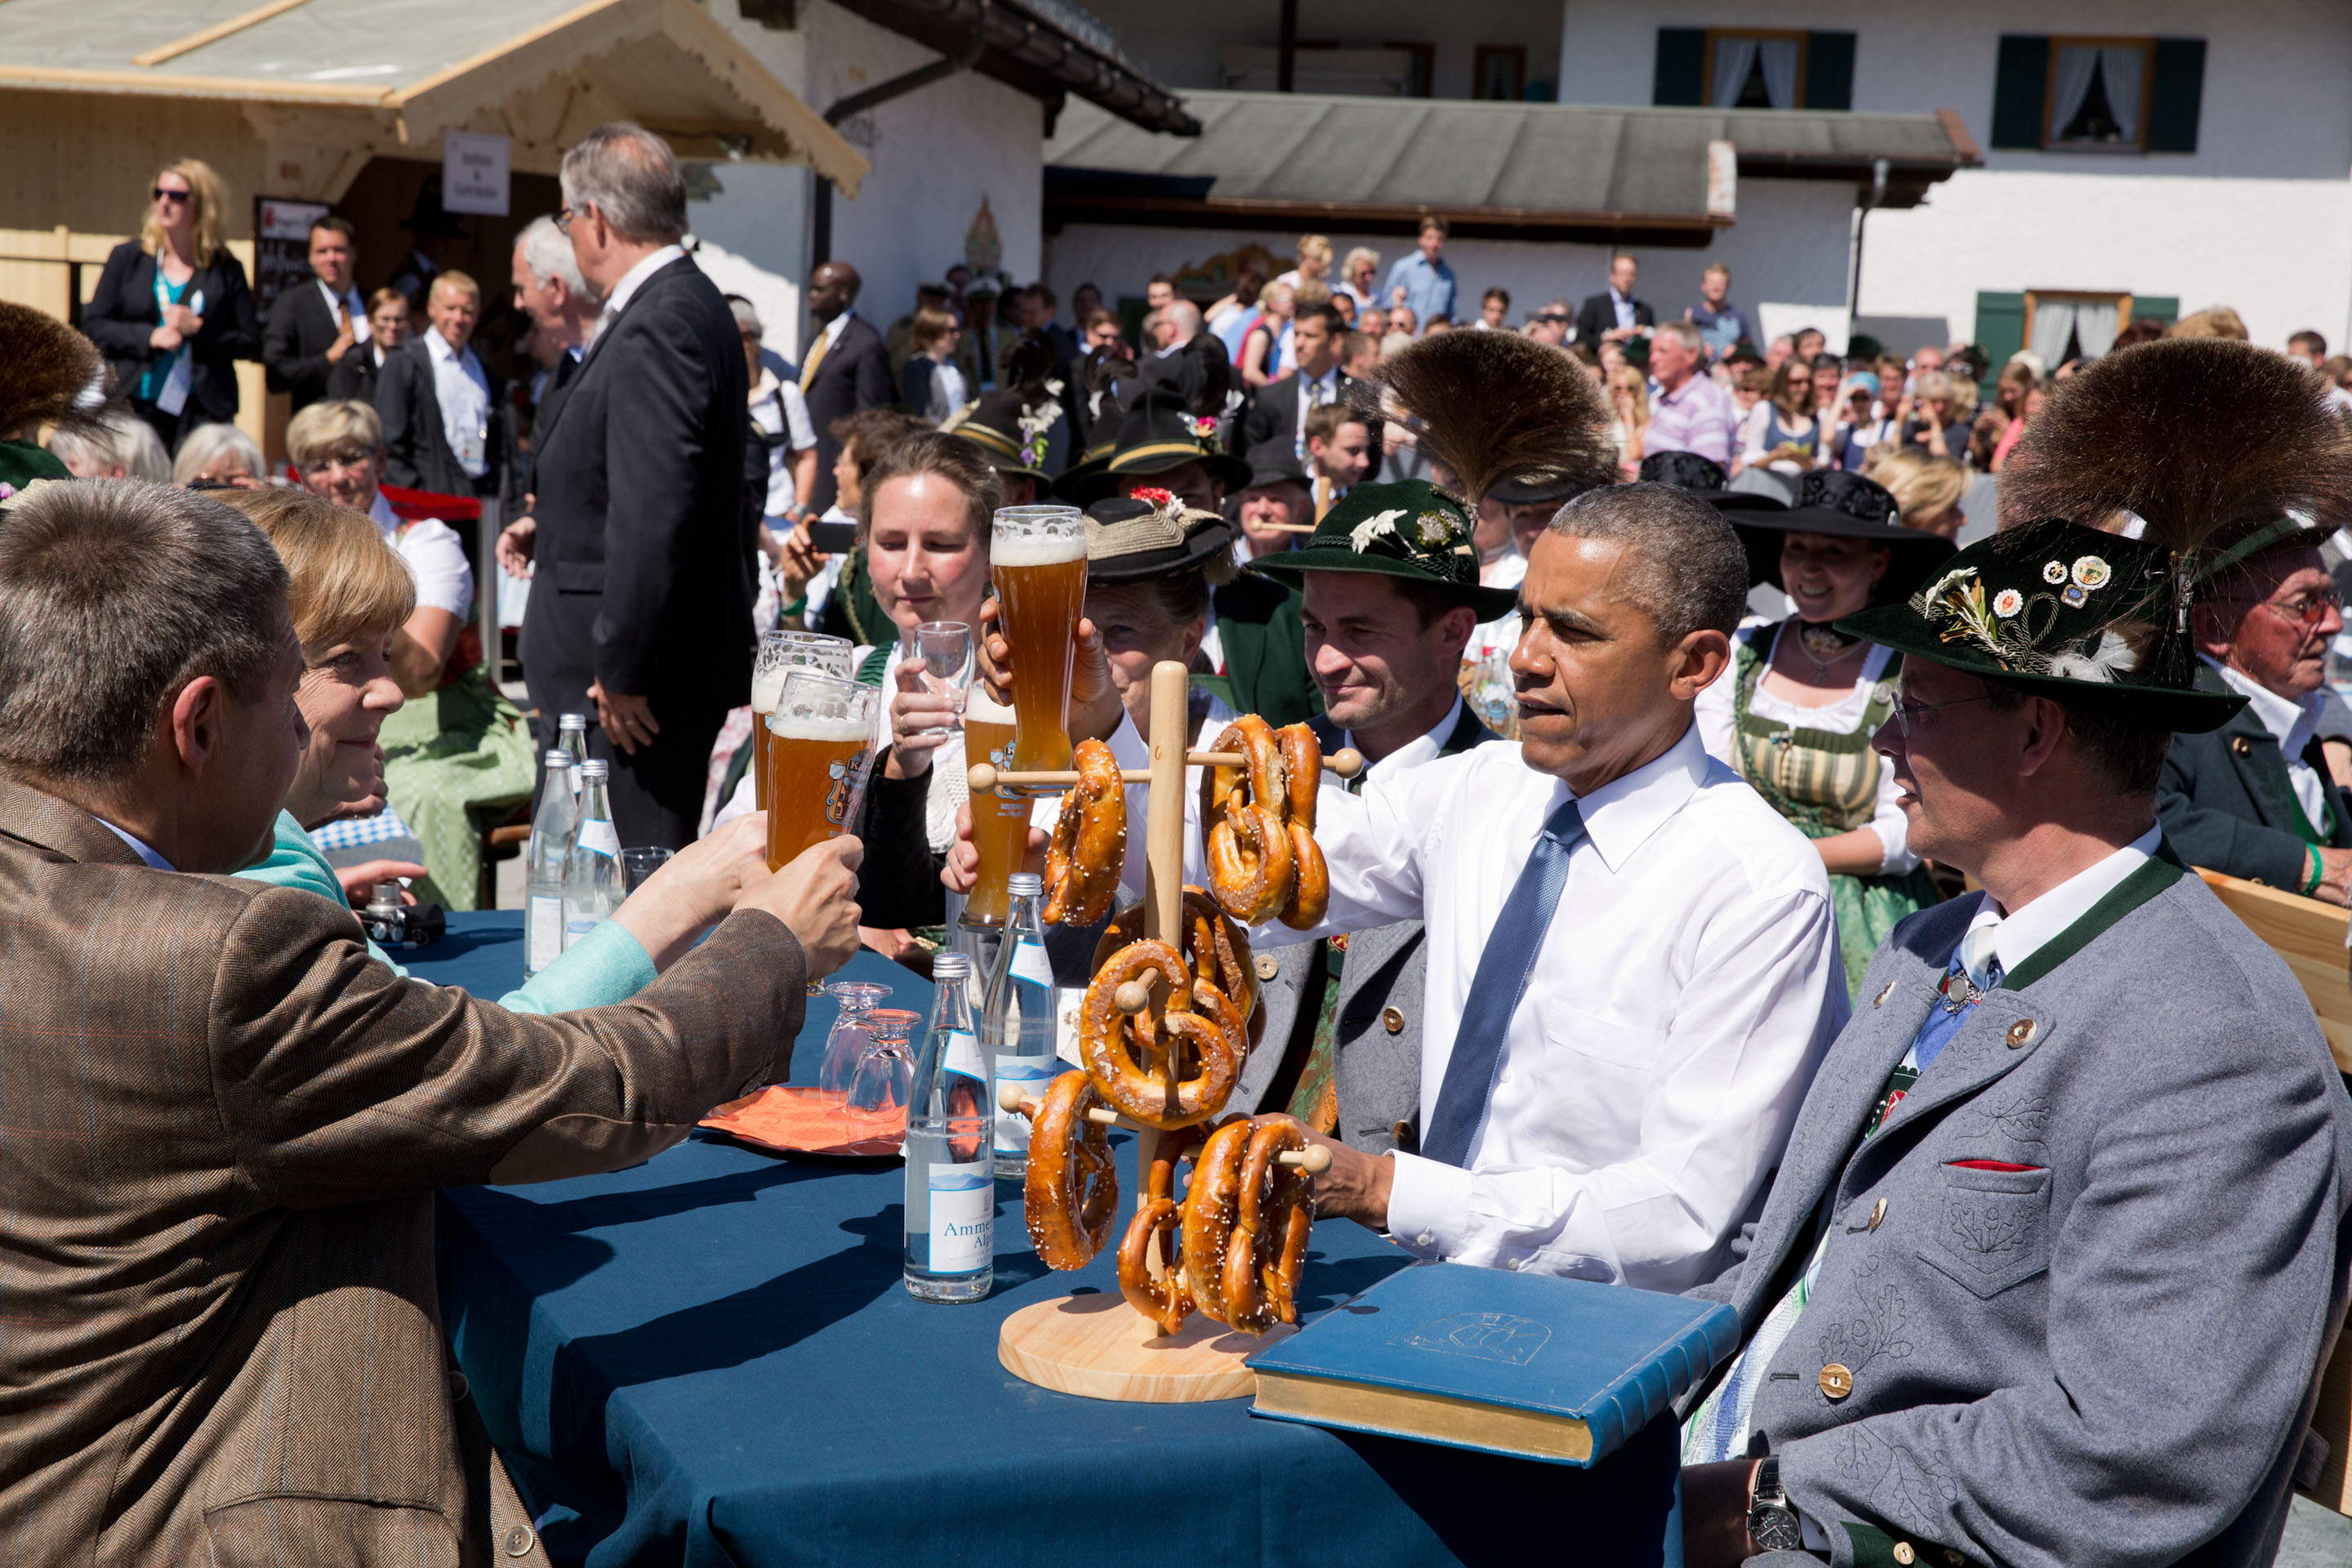 President Obama toasts with Germany's Angela Merkel